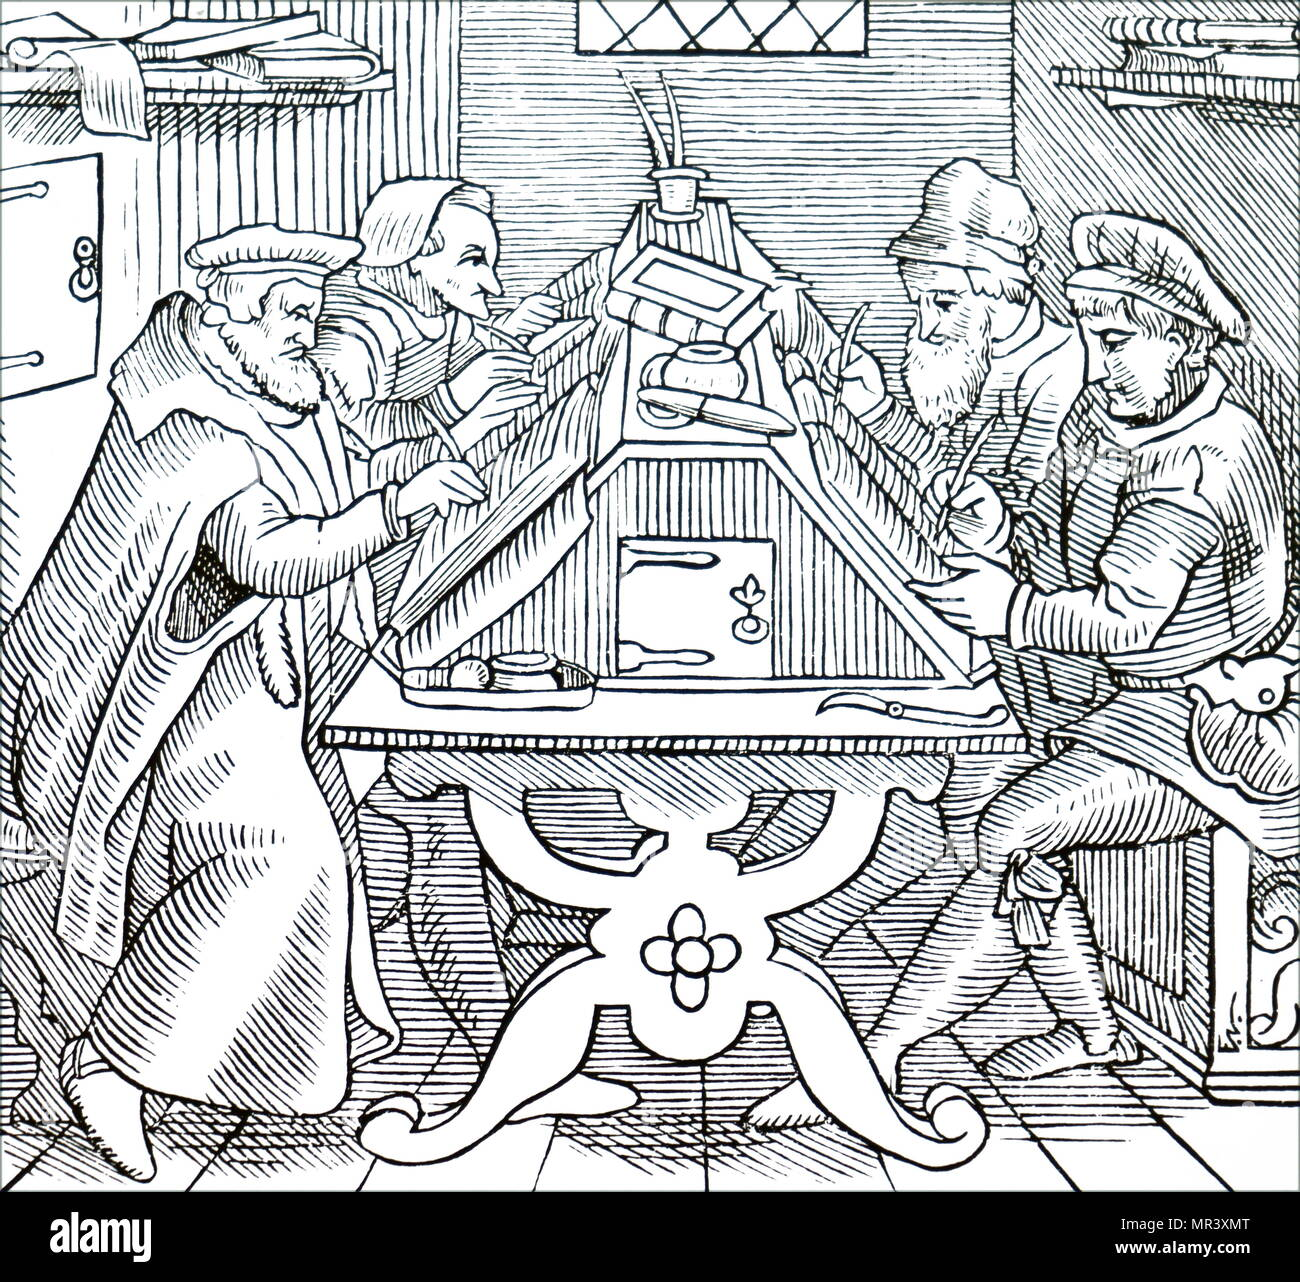 Woodblock print depicting historiographers. Dated 16th century - Stock Image